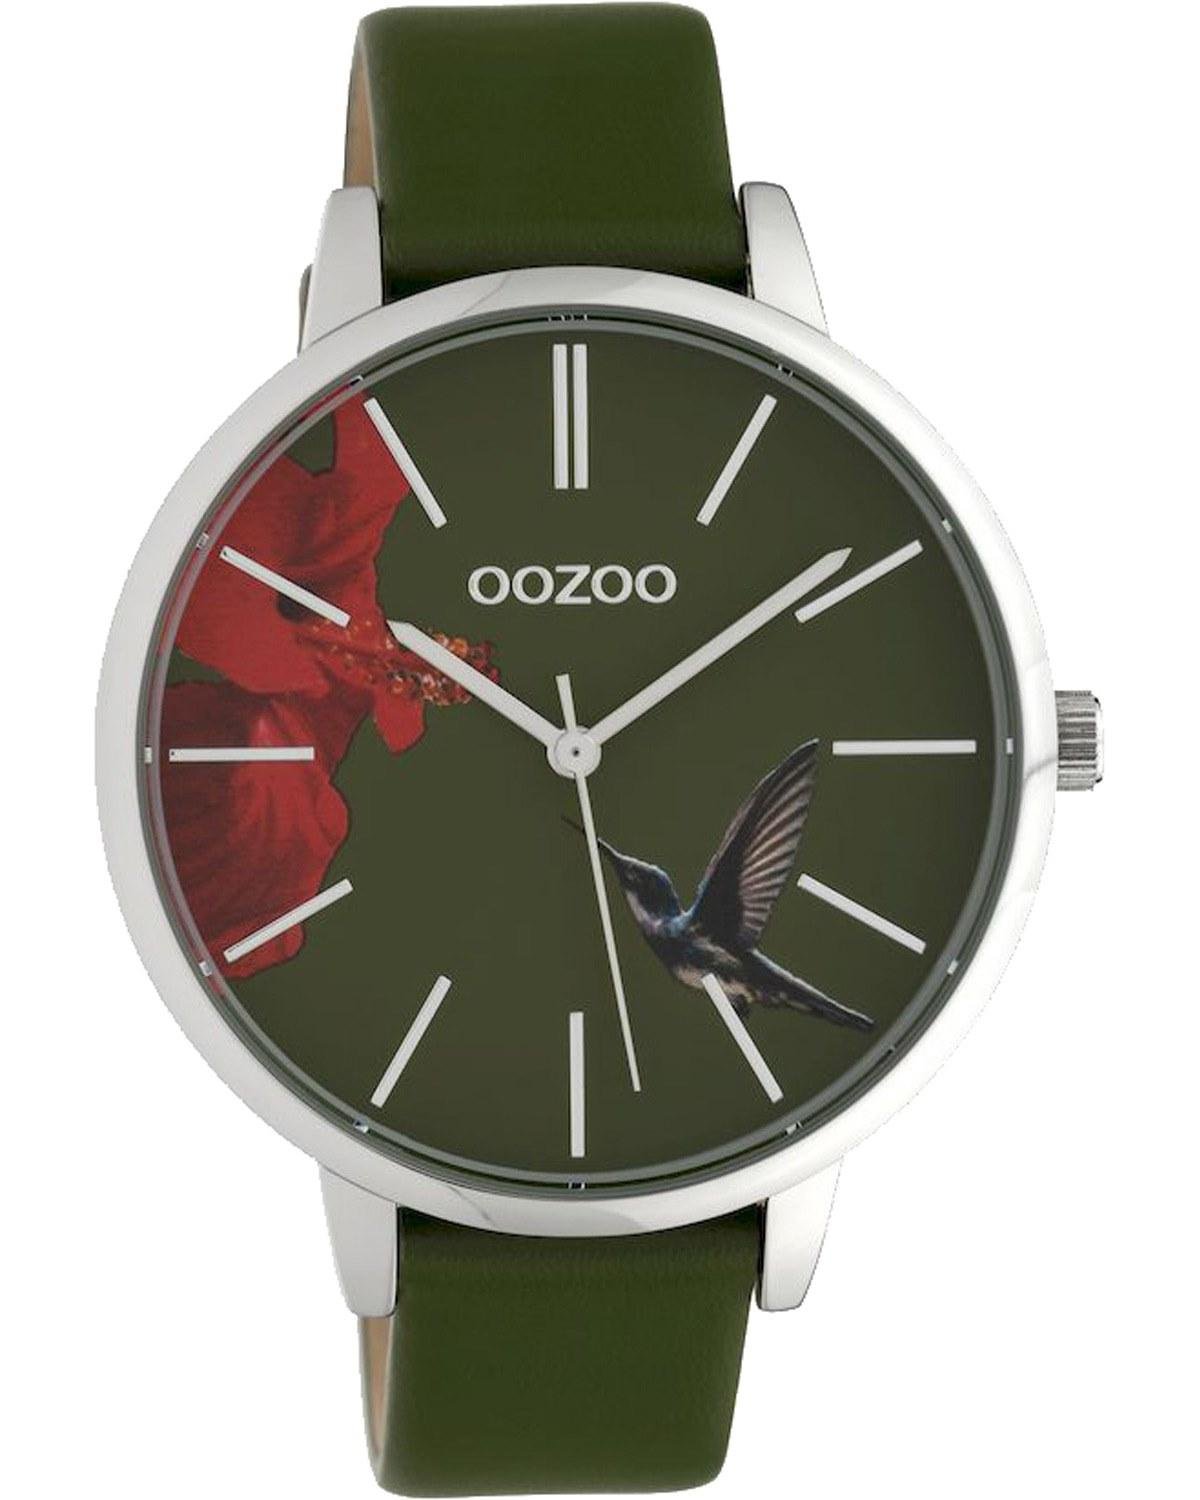 OOZOO Timepieces Limited Blue Leather Strap C10185